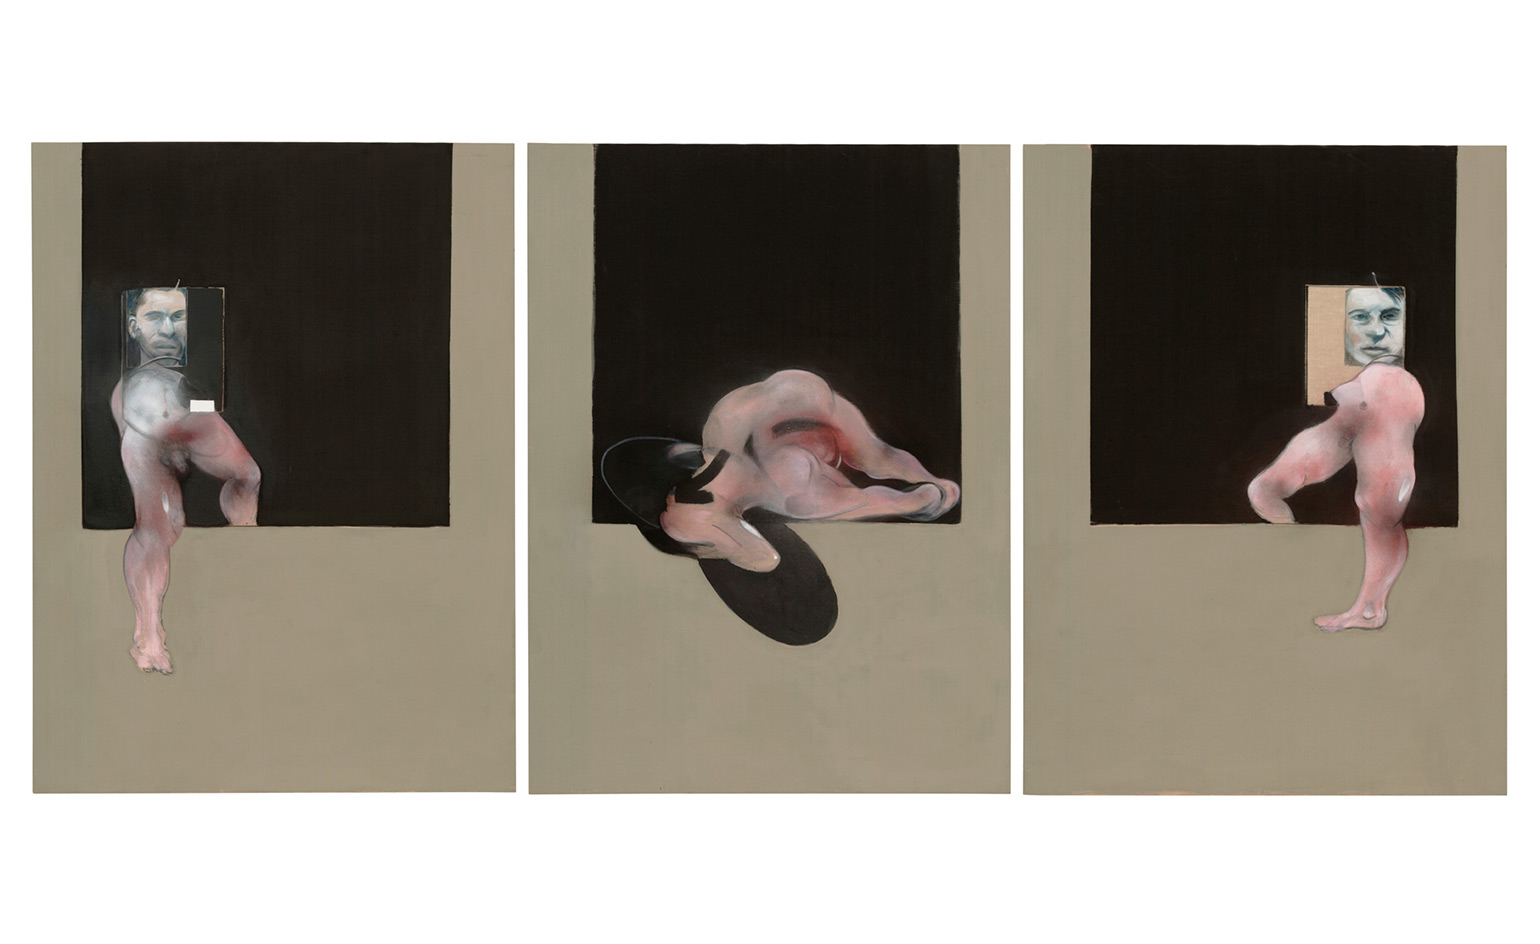 Francis Bacon S Late Paintings On View In New York